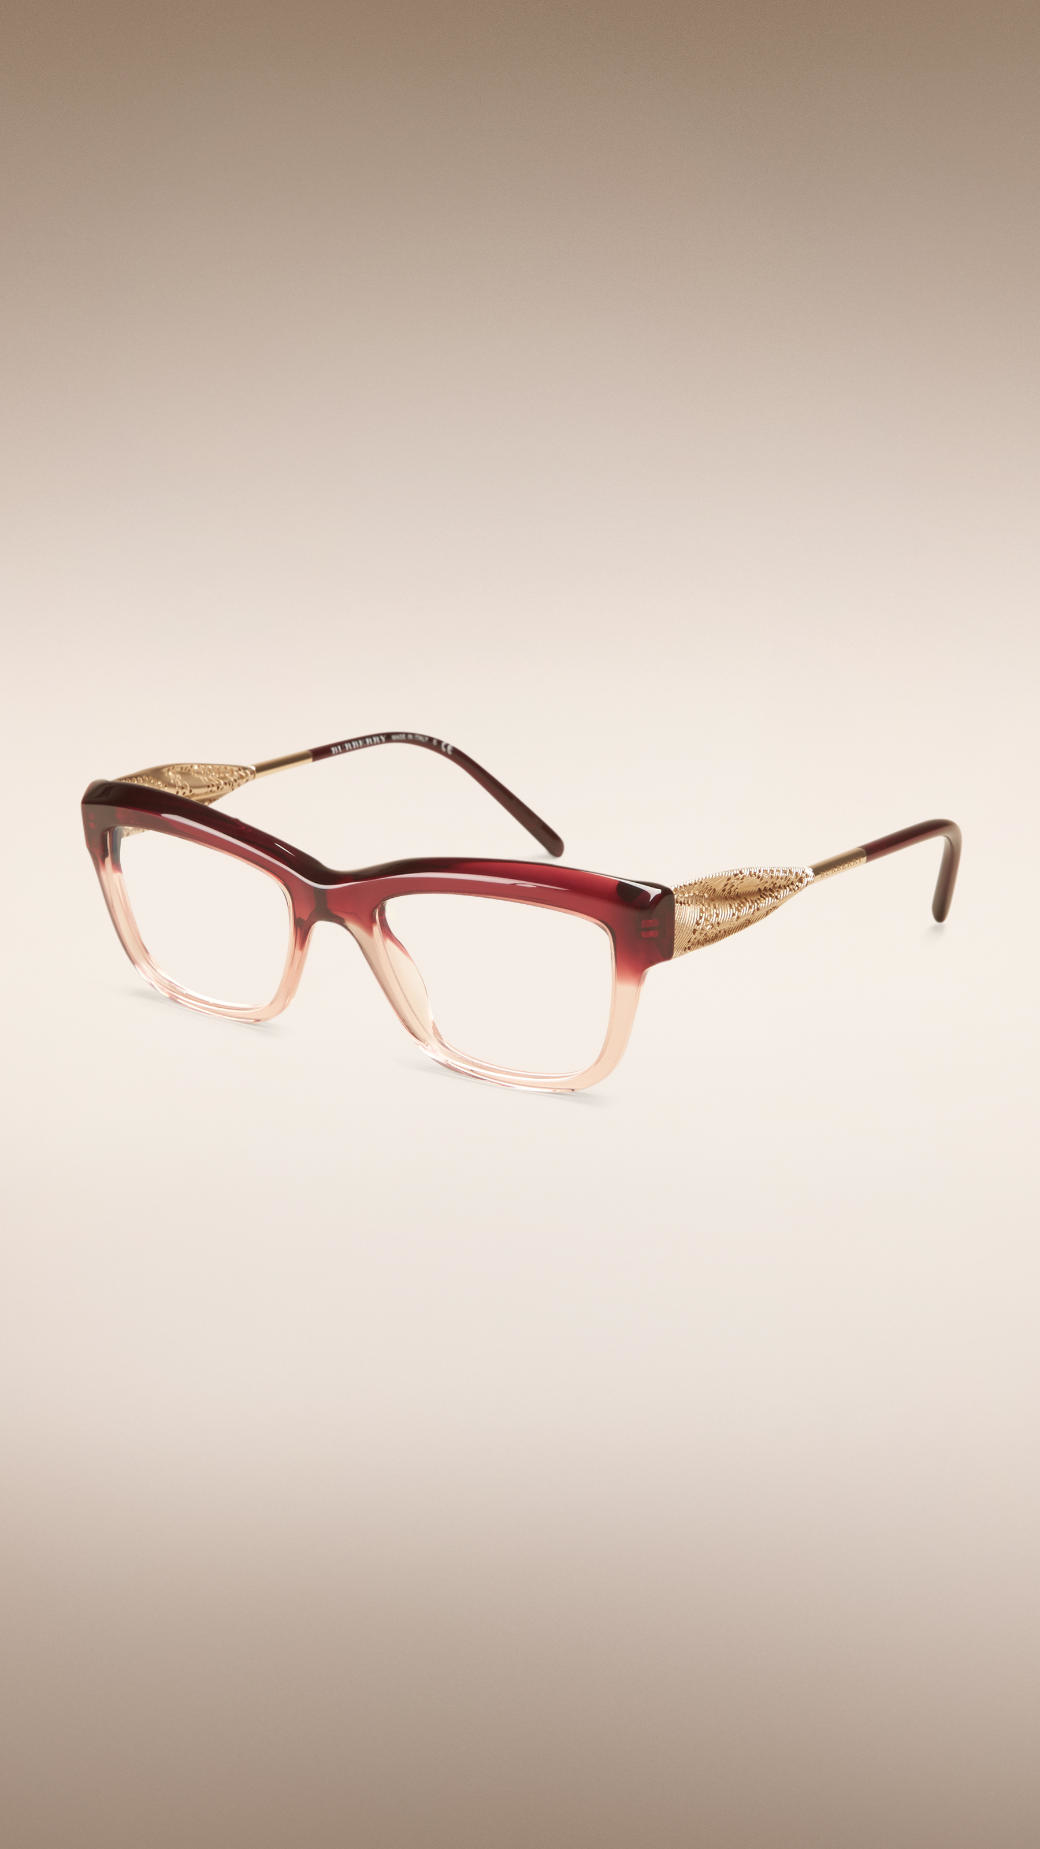 bb3d36deba Burberry Gabardine Lace Collection Cat-eye Optical Frames Dark Military Red  in Red - Lyst